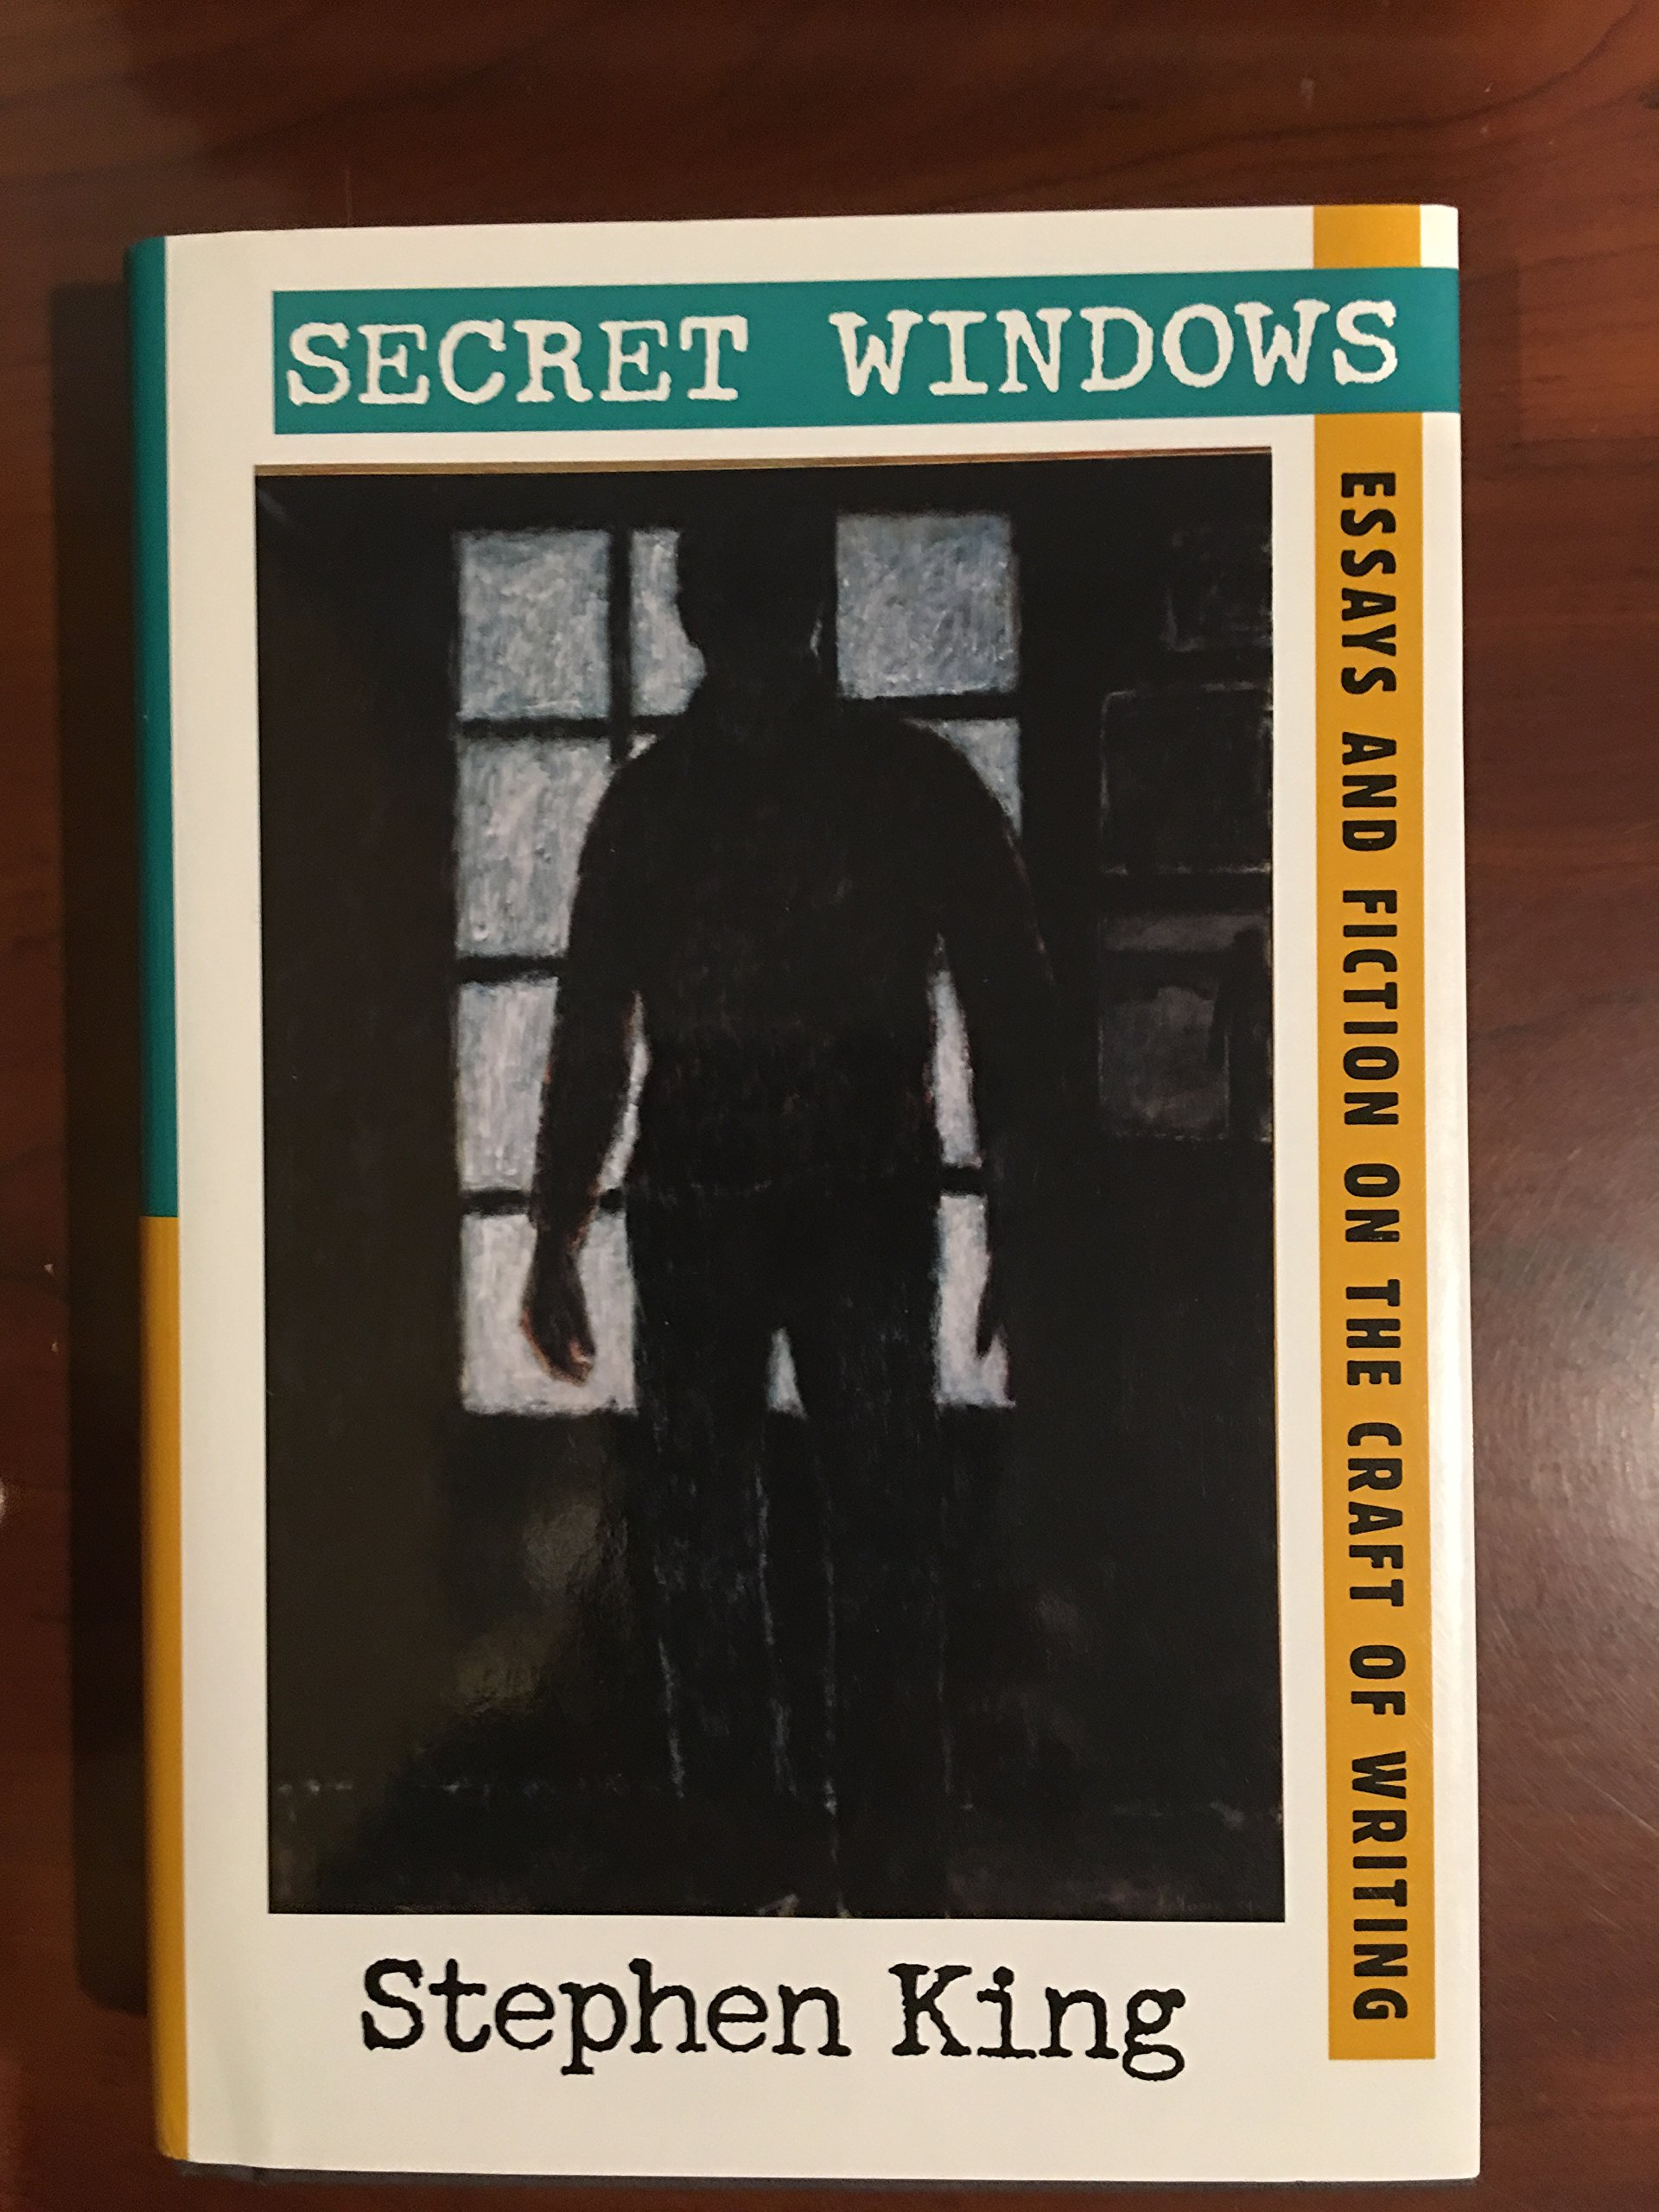 Speech Essay Secret Windows Essays And Fiction On The Craft Of Writing Stephen King   Amazoncom Books Breaching Experiment Essay also Essays On Their Eyes Were Watching God Secret Windows Essays And Fiction On The Craft Of Writing Stephen  Essay About Social Issues